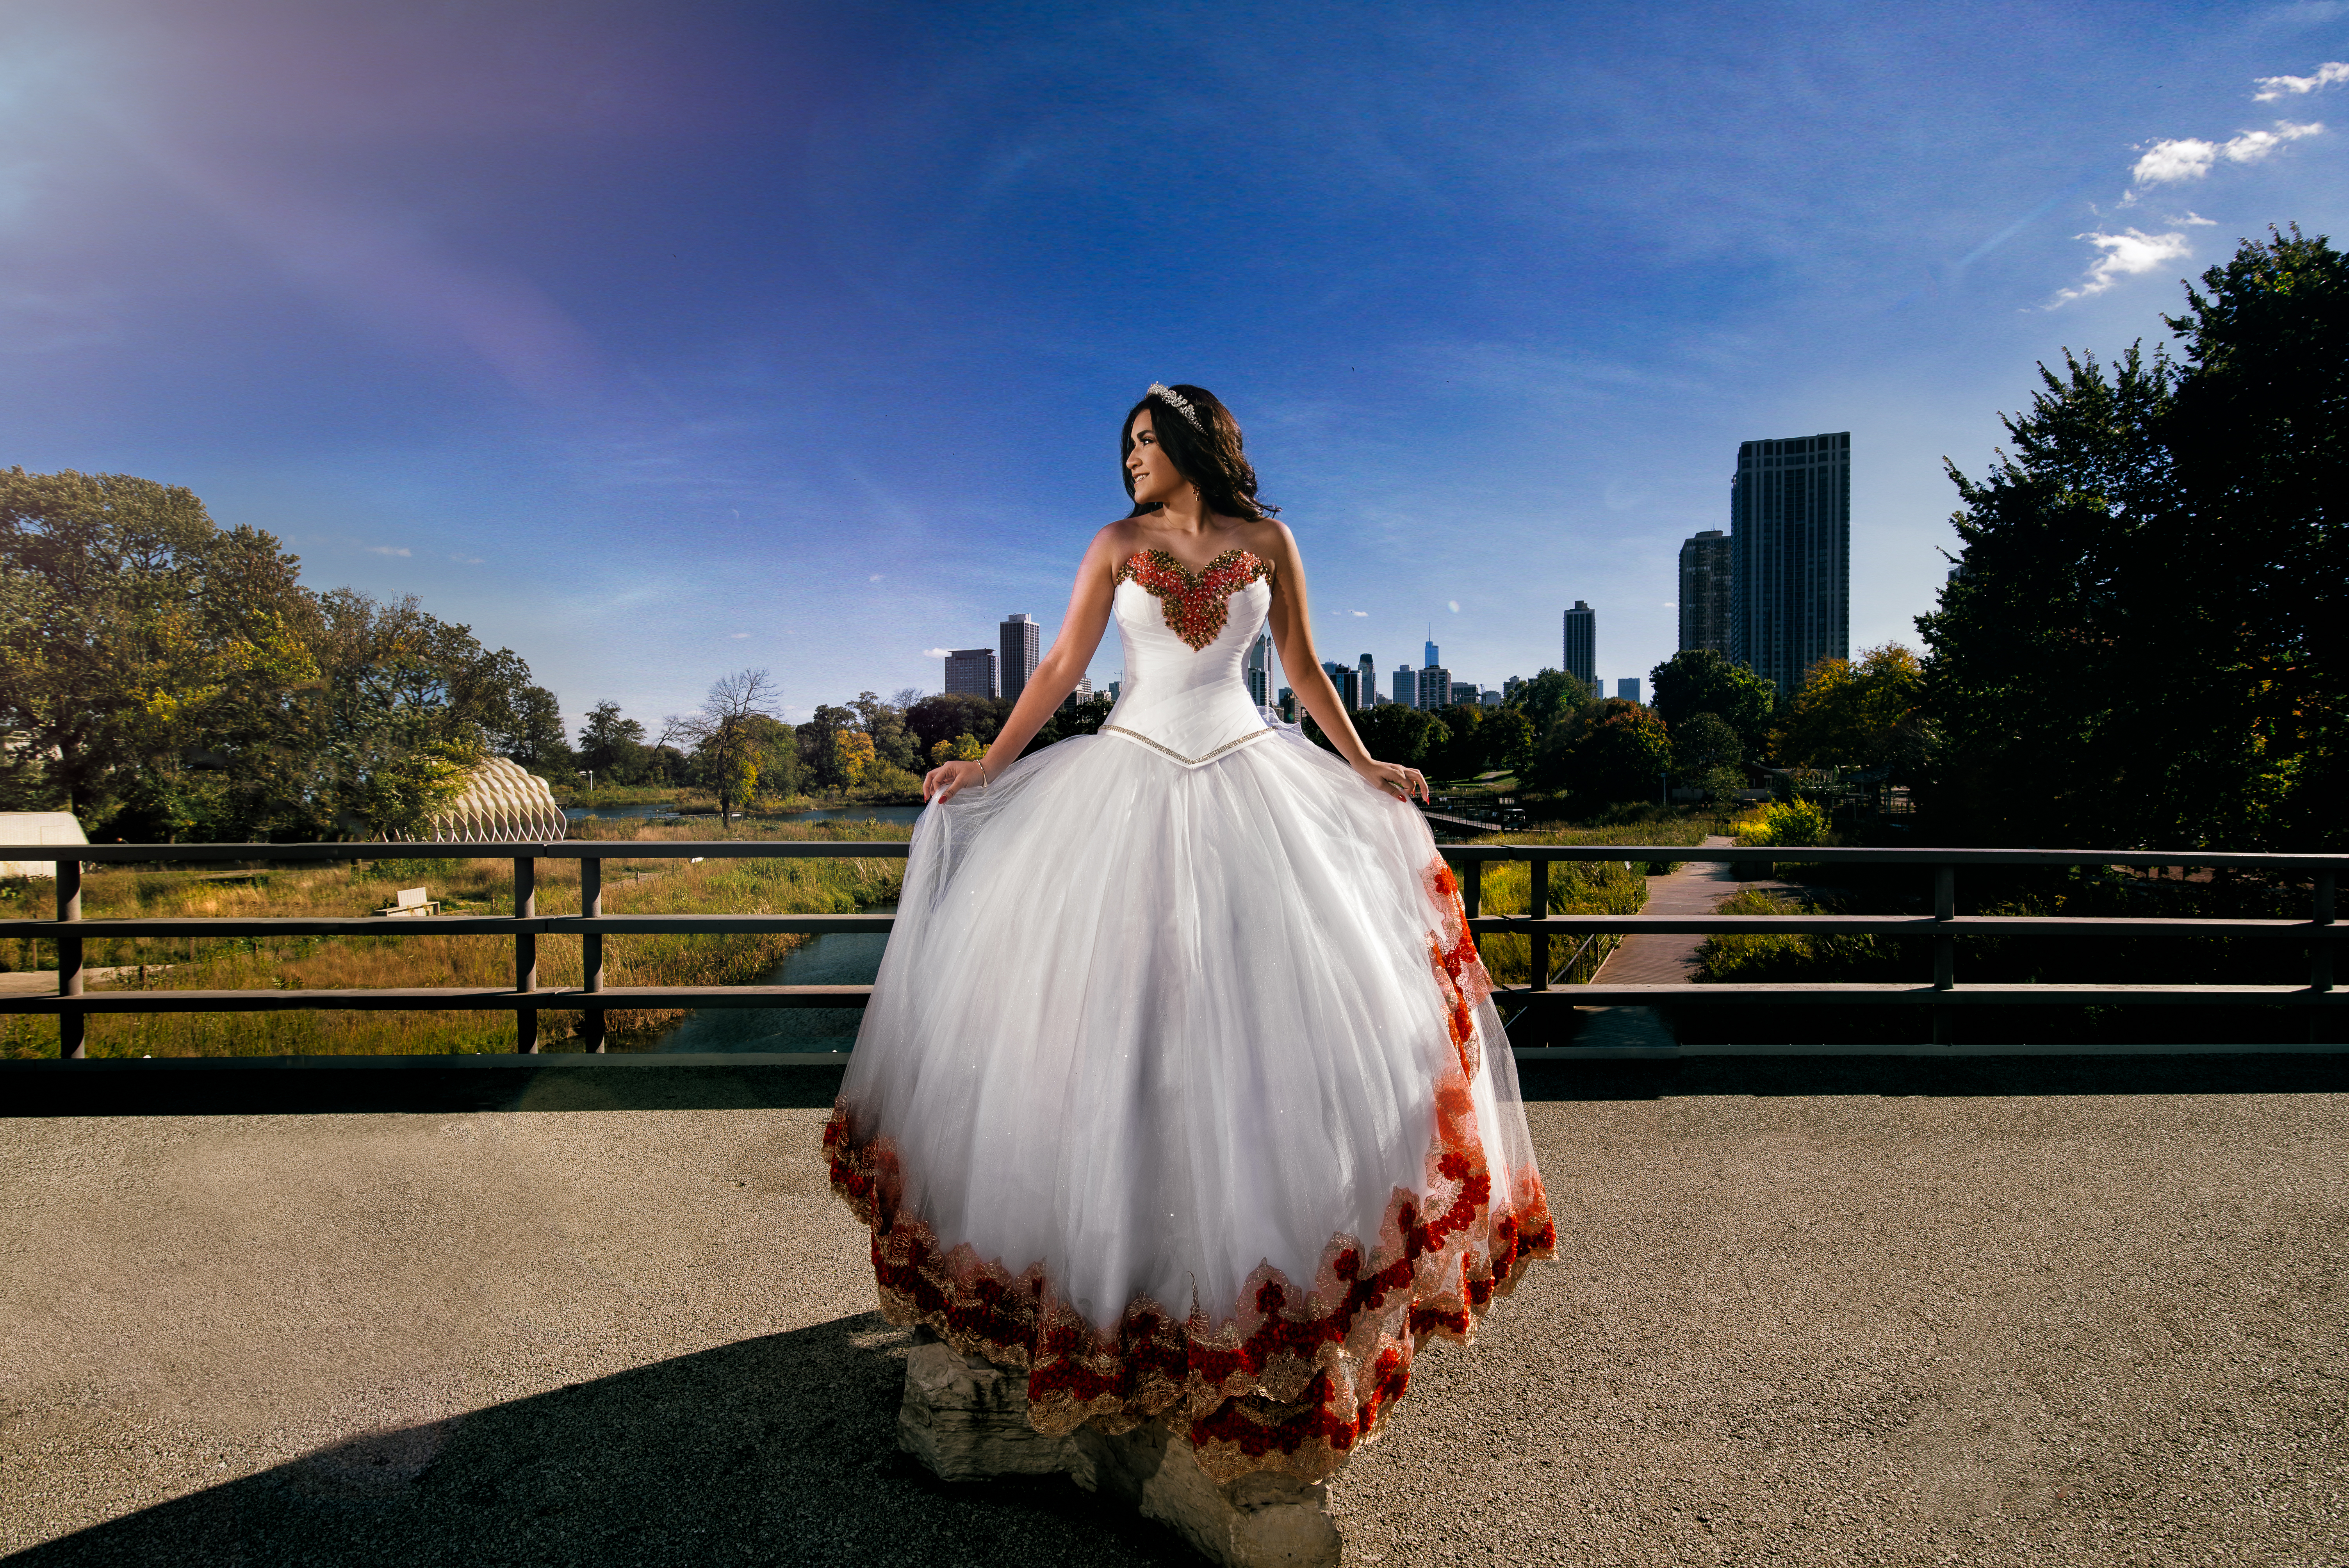 Lincoln Park Quinceanera photo by Olga and Jose